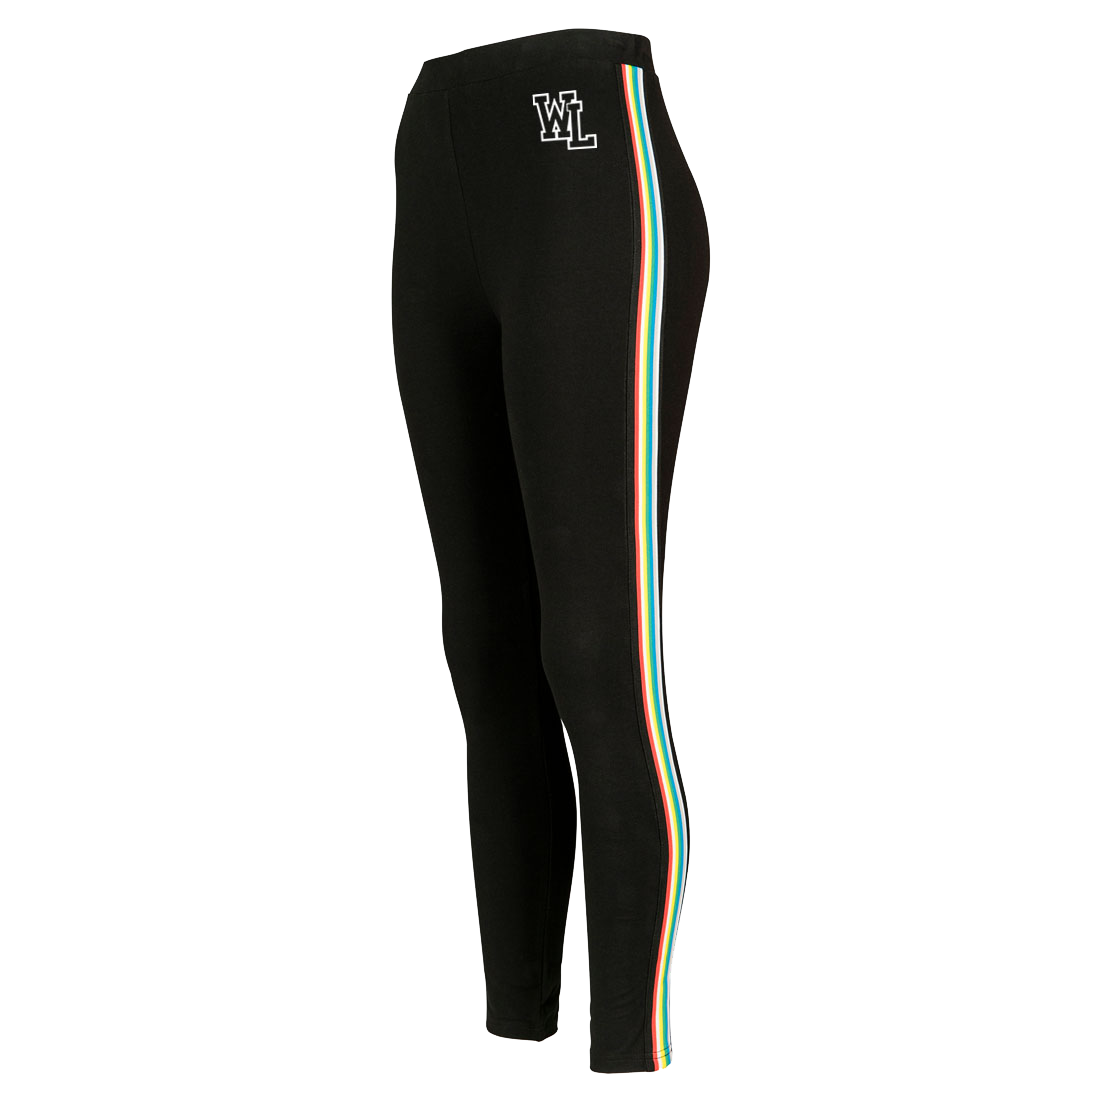 Westlife: WL Leggings